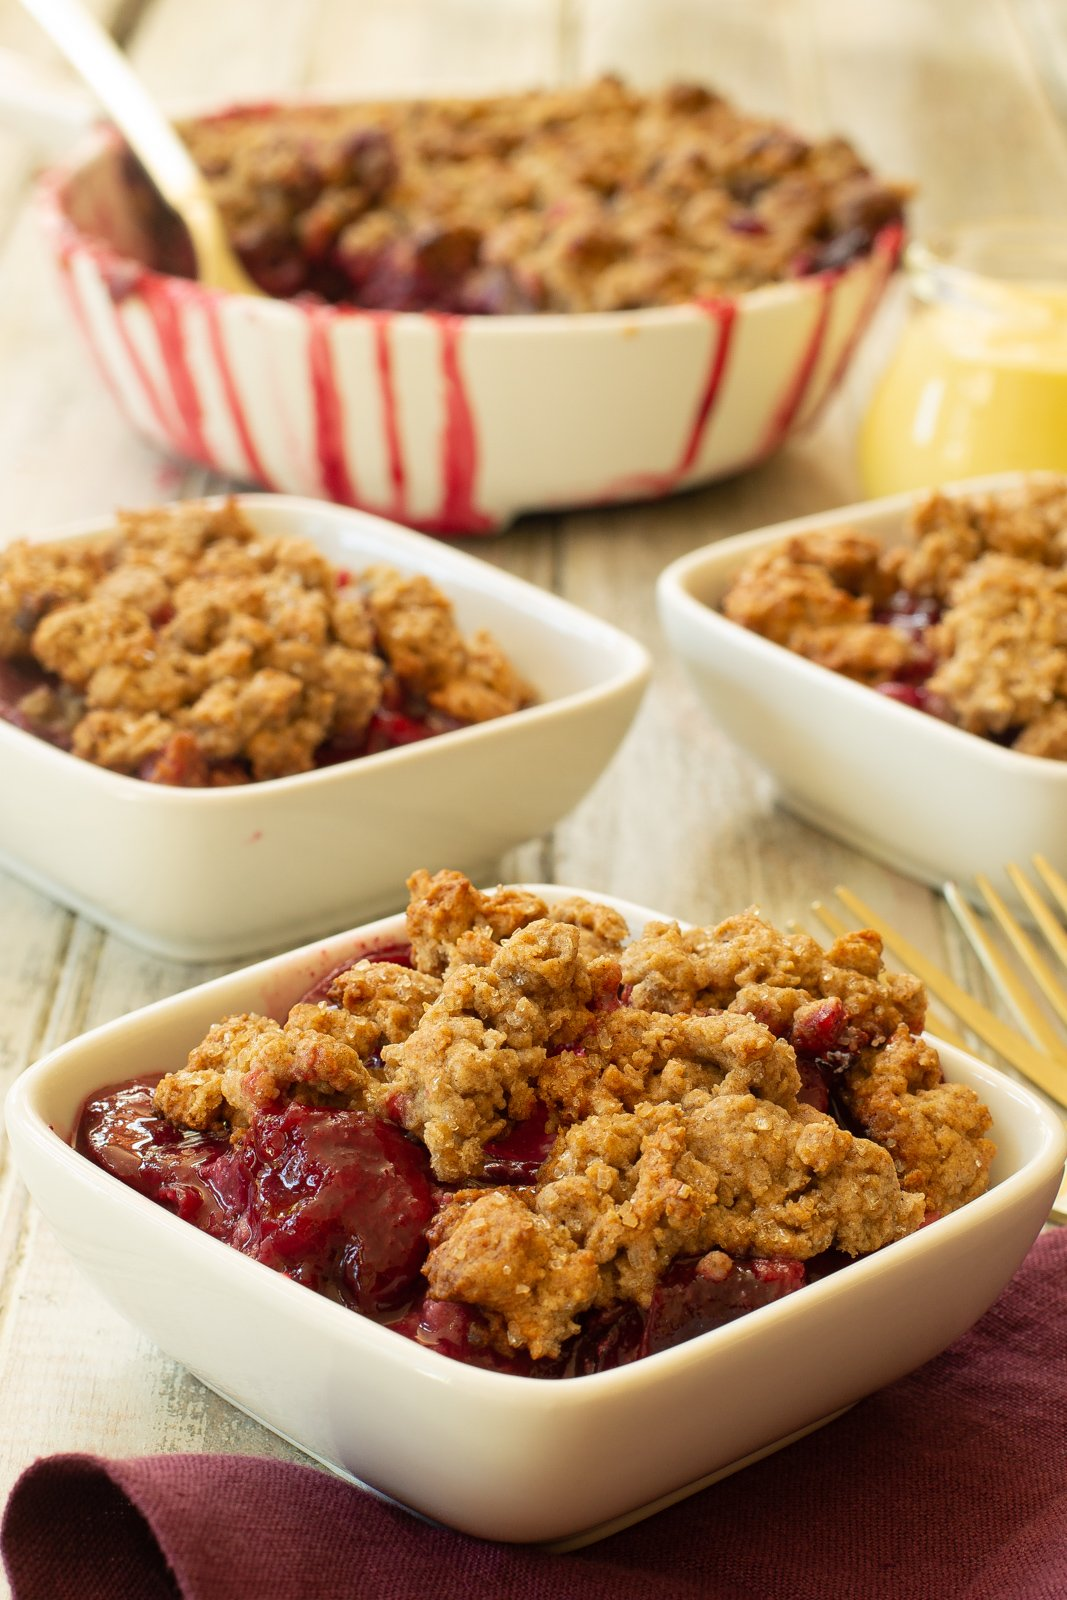 a baking dish of plum cobbler with juice running down the sides next to individual filled white bowls